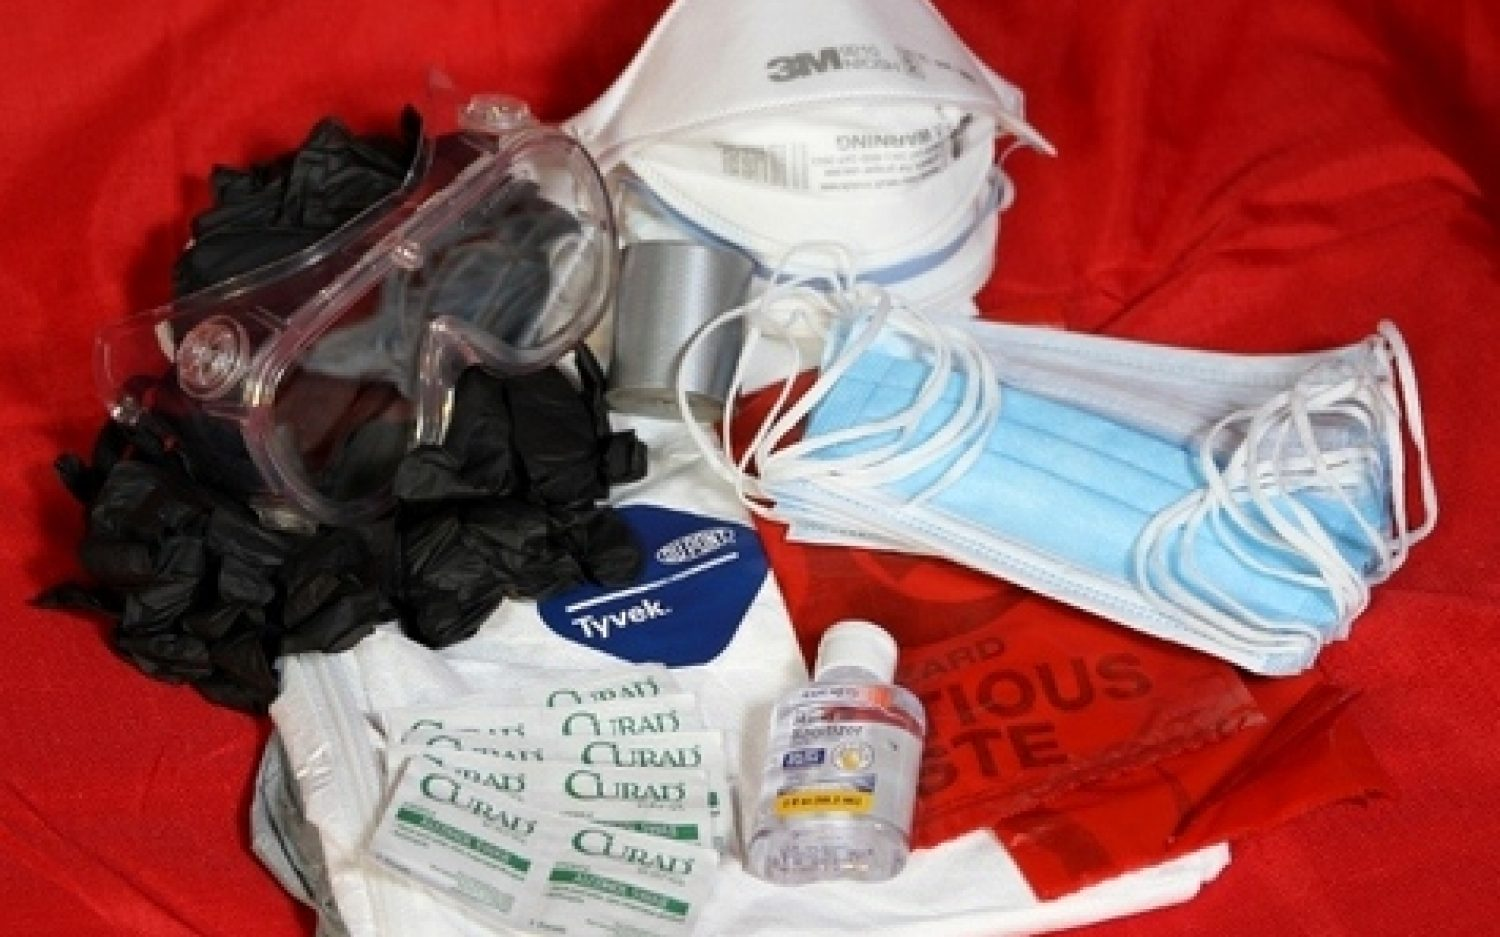 Should American families be prepping for an Ebola outbreak?